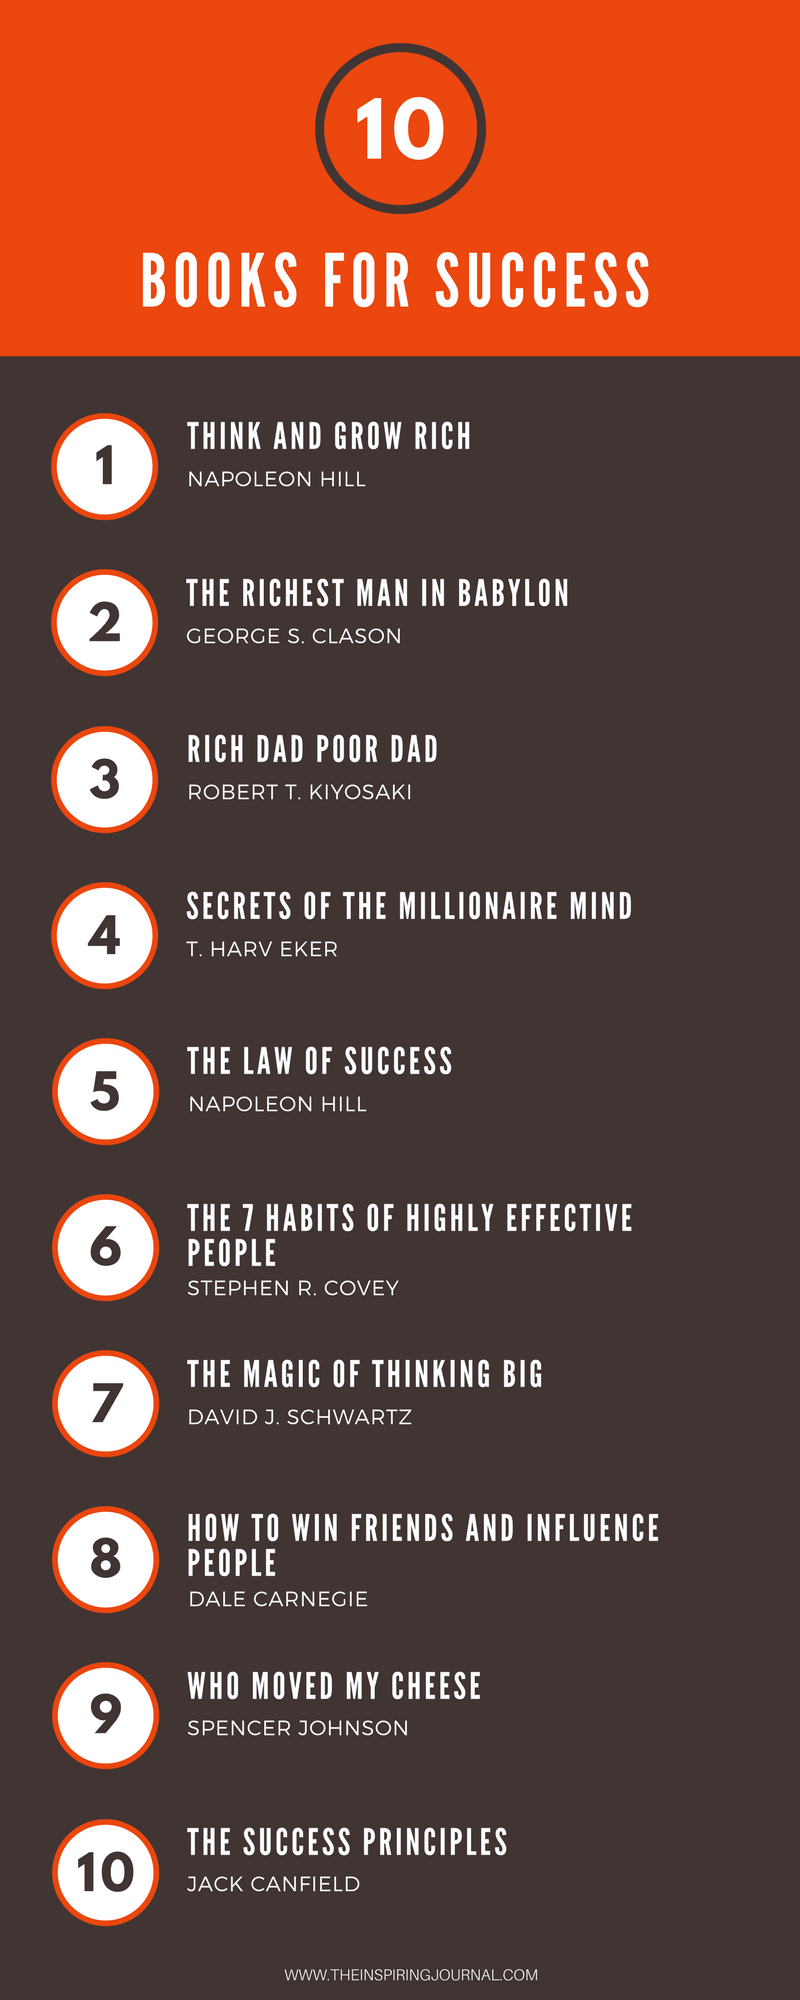 10 Books for Success